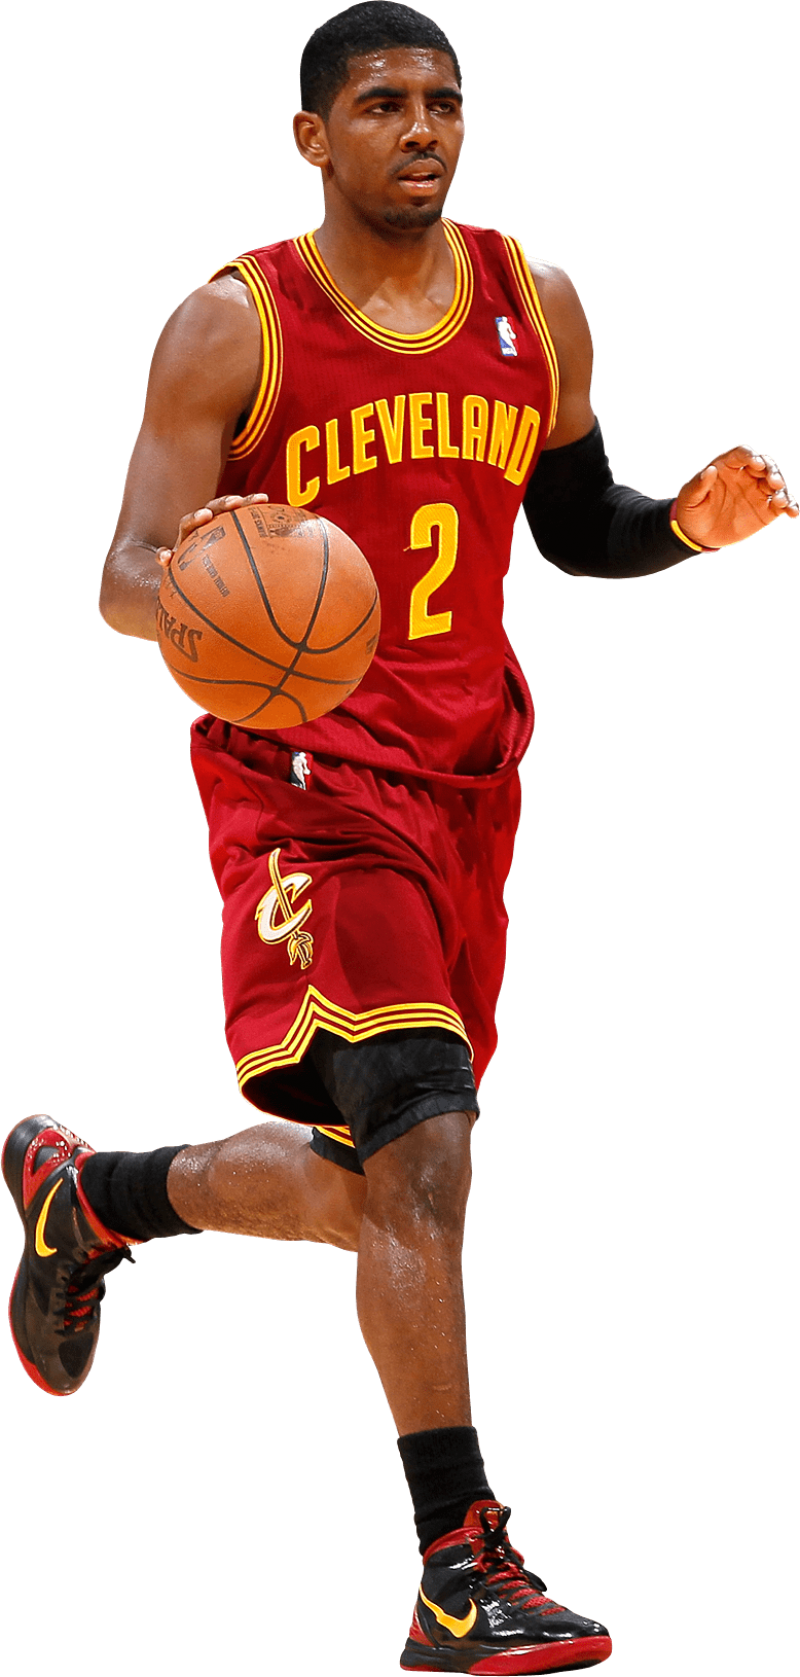 NBA Player PNG Image